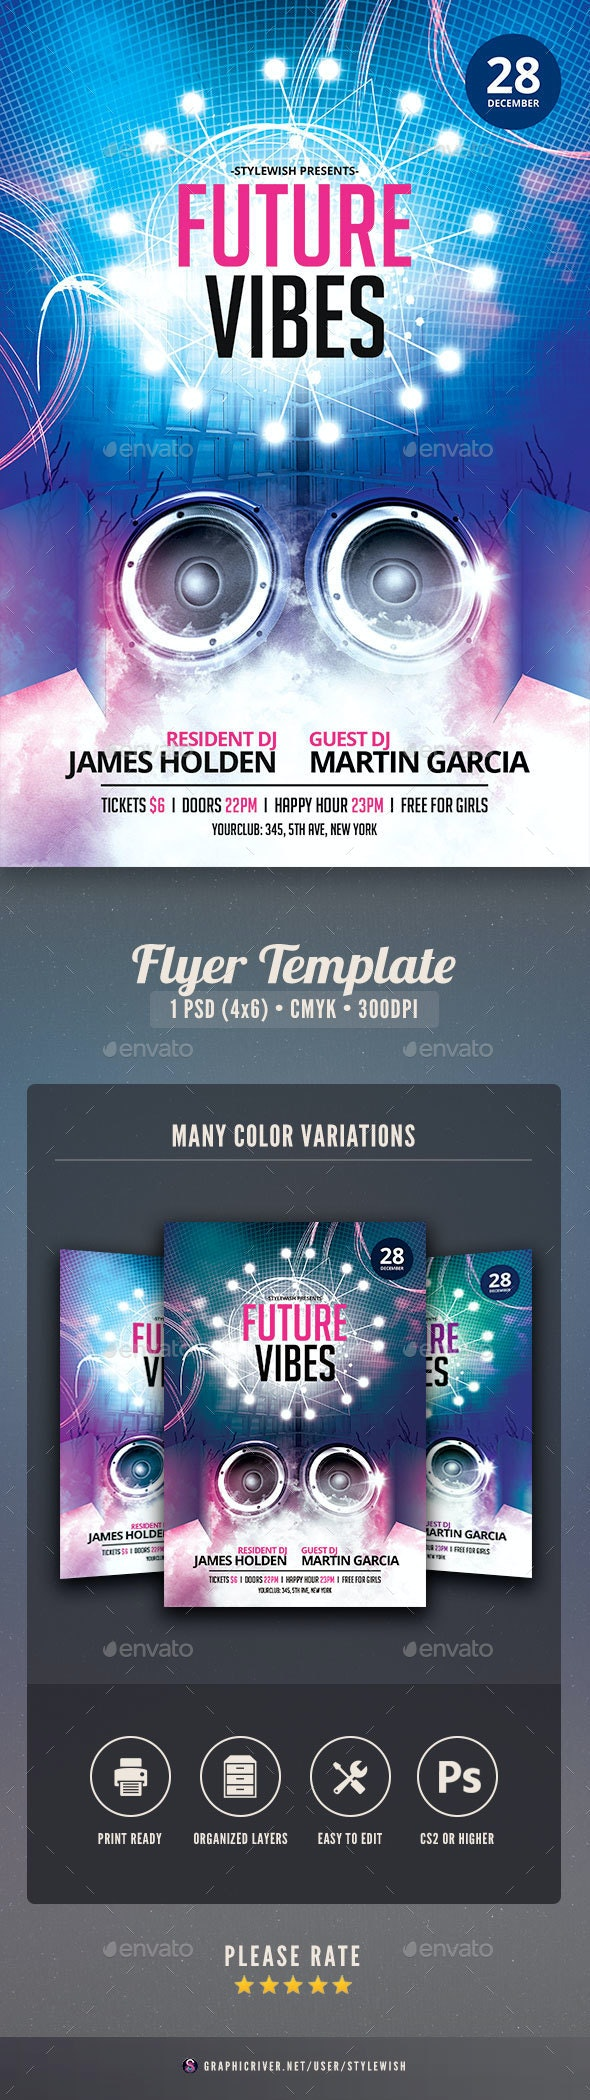 Future Vibes Flyer - Clubs & Parties Events